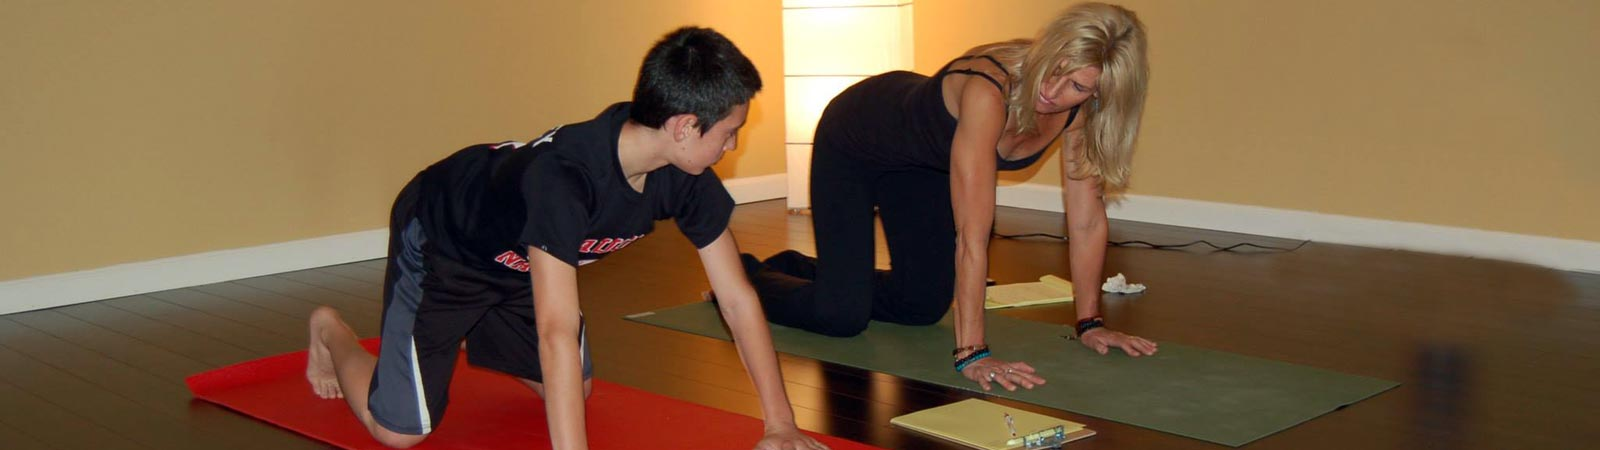 premier-athletic-assessment-yoga